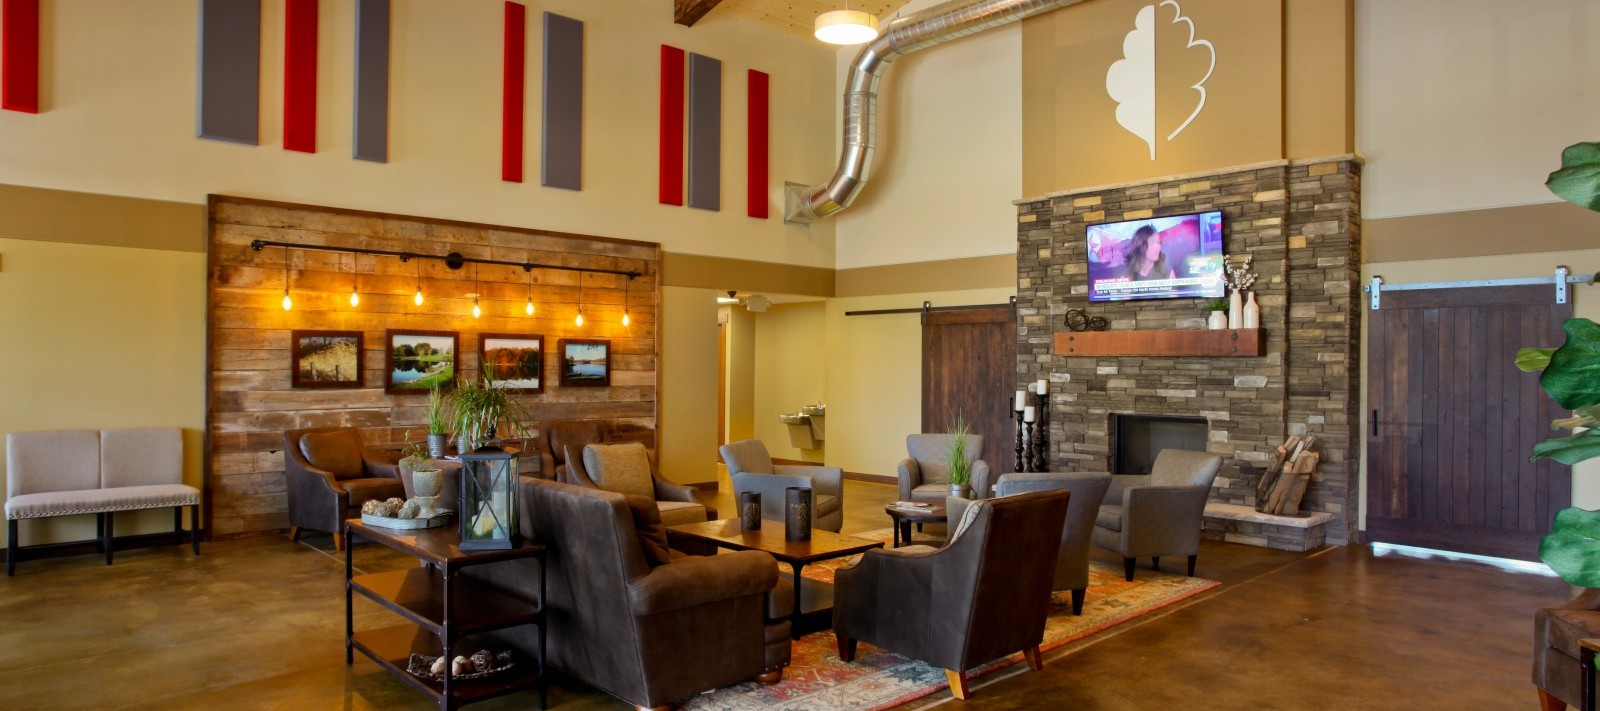 Oak Run Golf Course lobby lounge